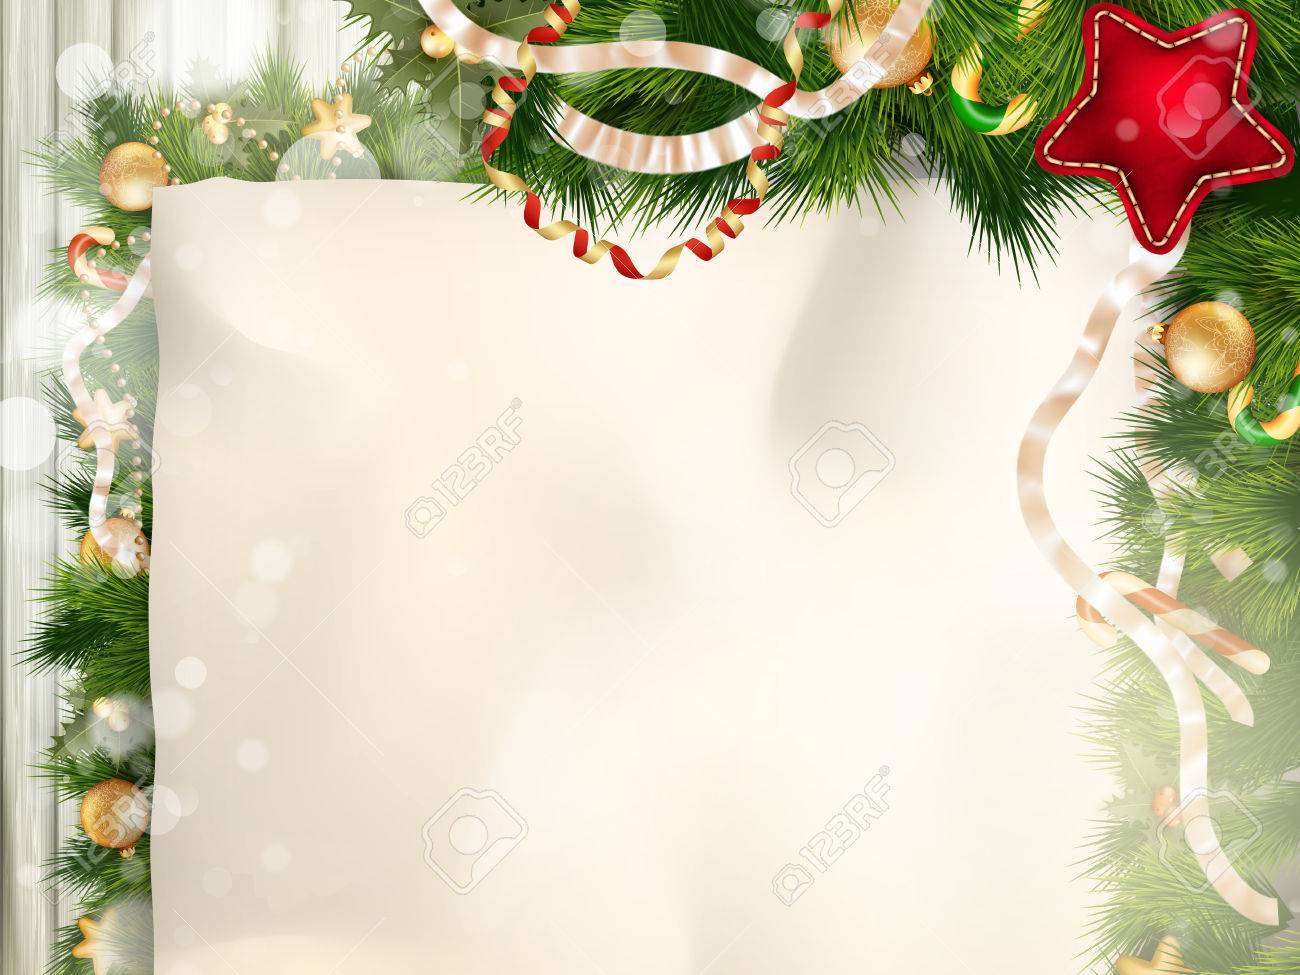 Christmas Letter Stock Photos Royalty Free Christmas Letter Images